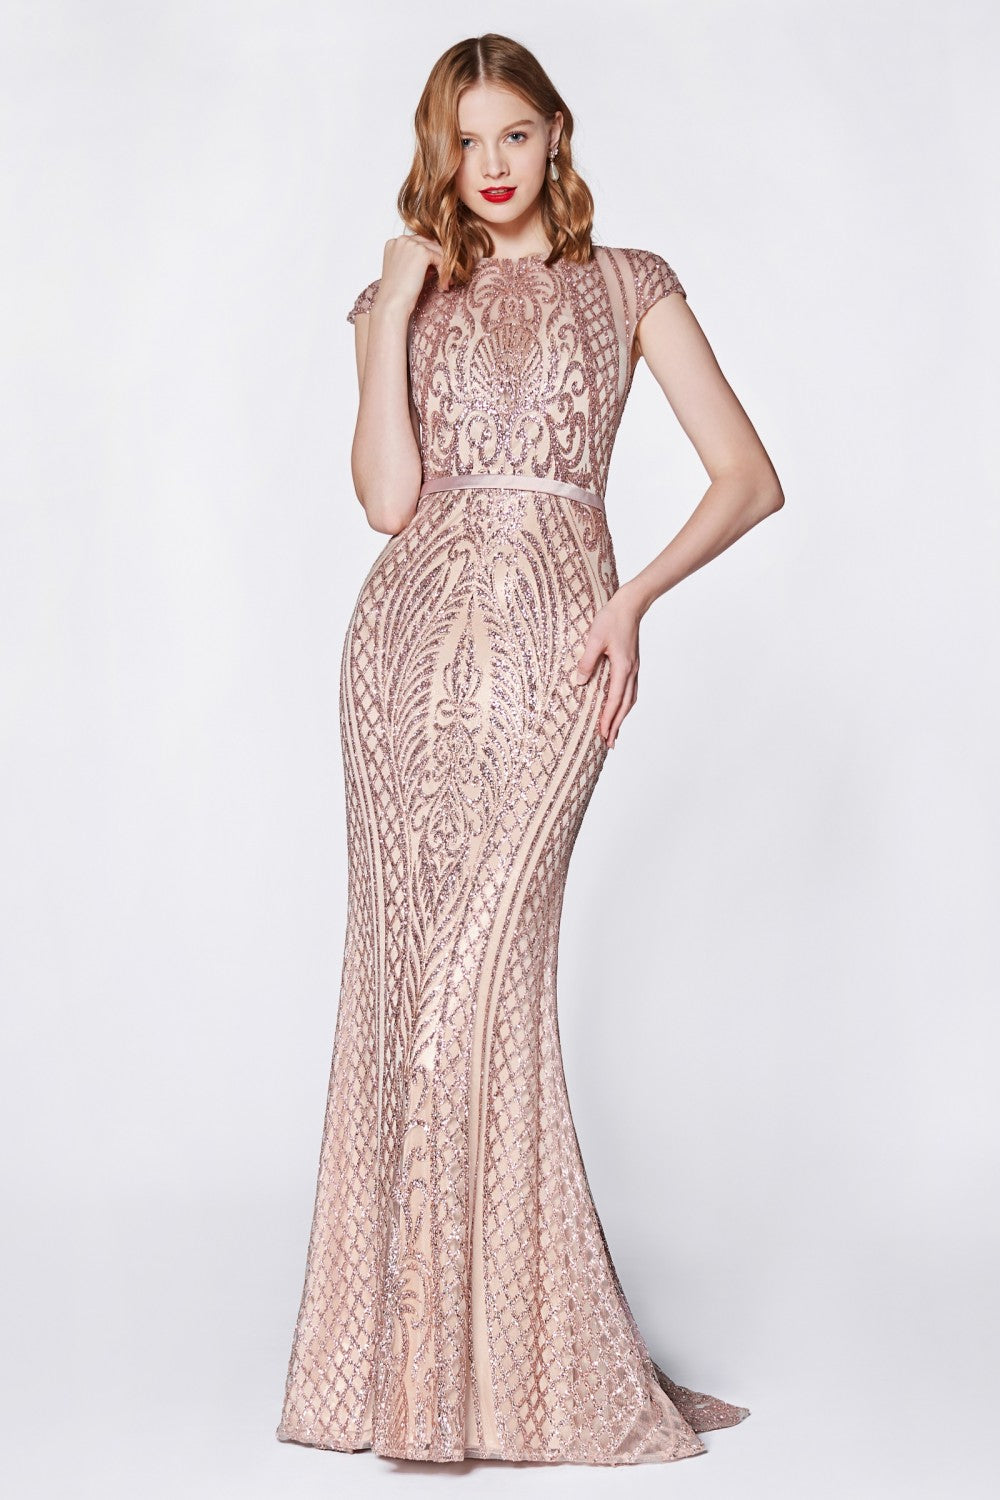 Cinderella Divine Chart I CD J768 - Fitted Lattice Print Glitter Gown With Cap Sleeves And Closed Back - Diggz Prom